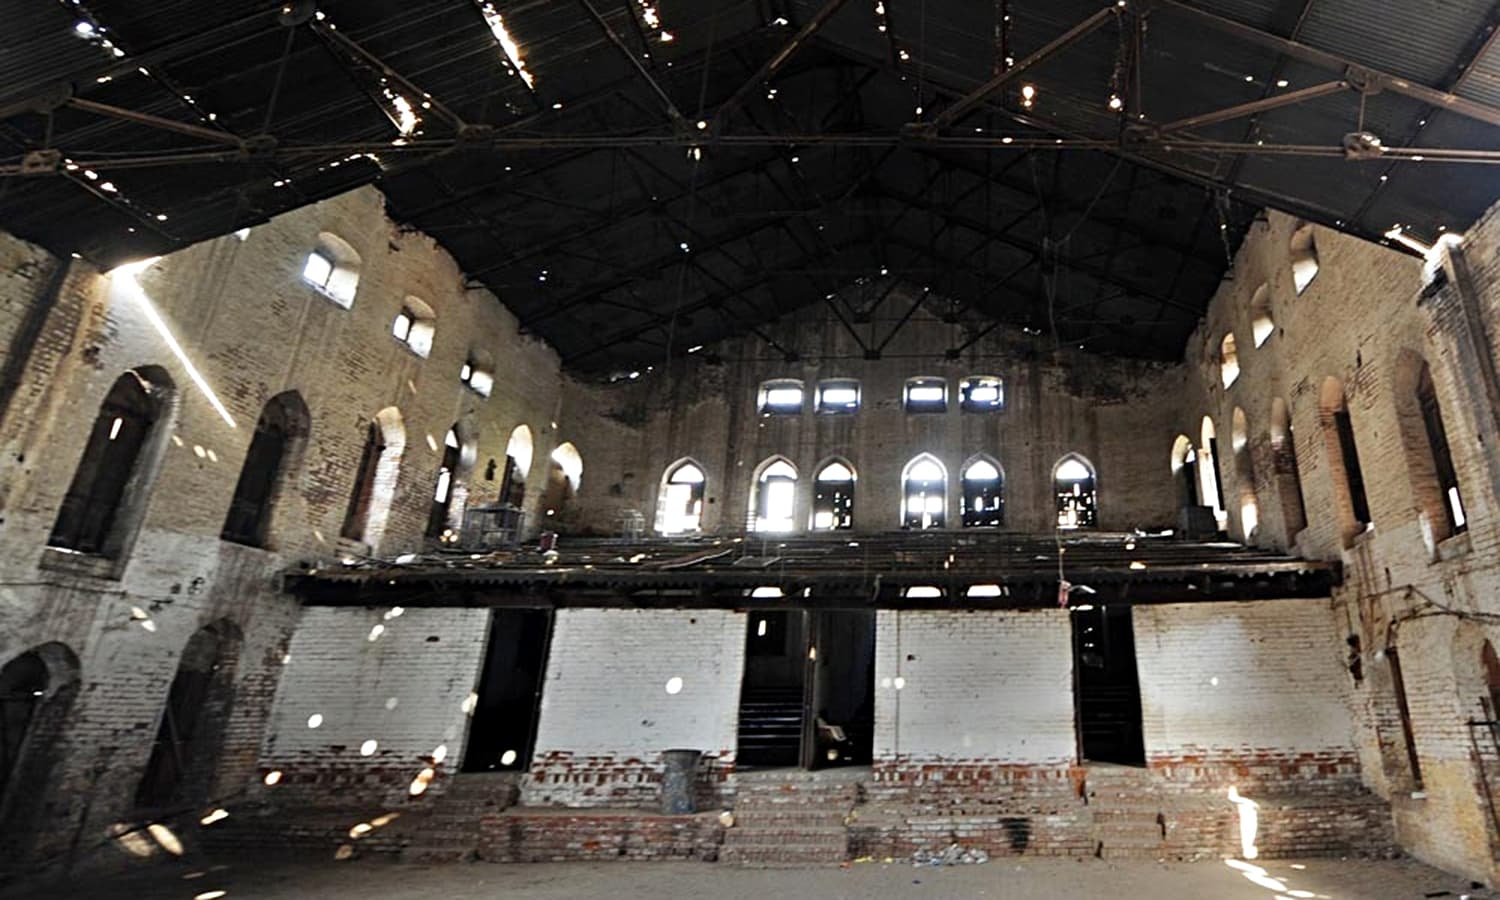 The wrecked state of the podium where the political leadership of the Indian subcontinent used to give out addresses. Below the pavilion, the gallery seats had been modified into rooms through partitions constructed by school teachers.